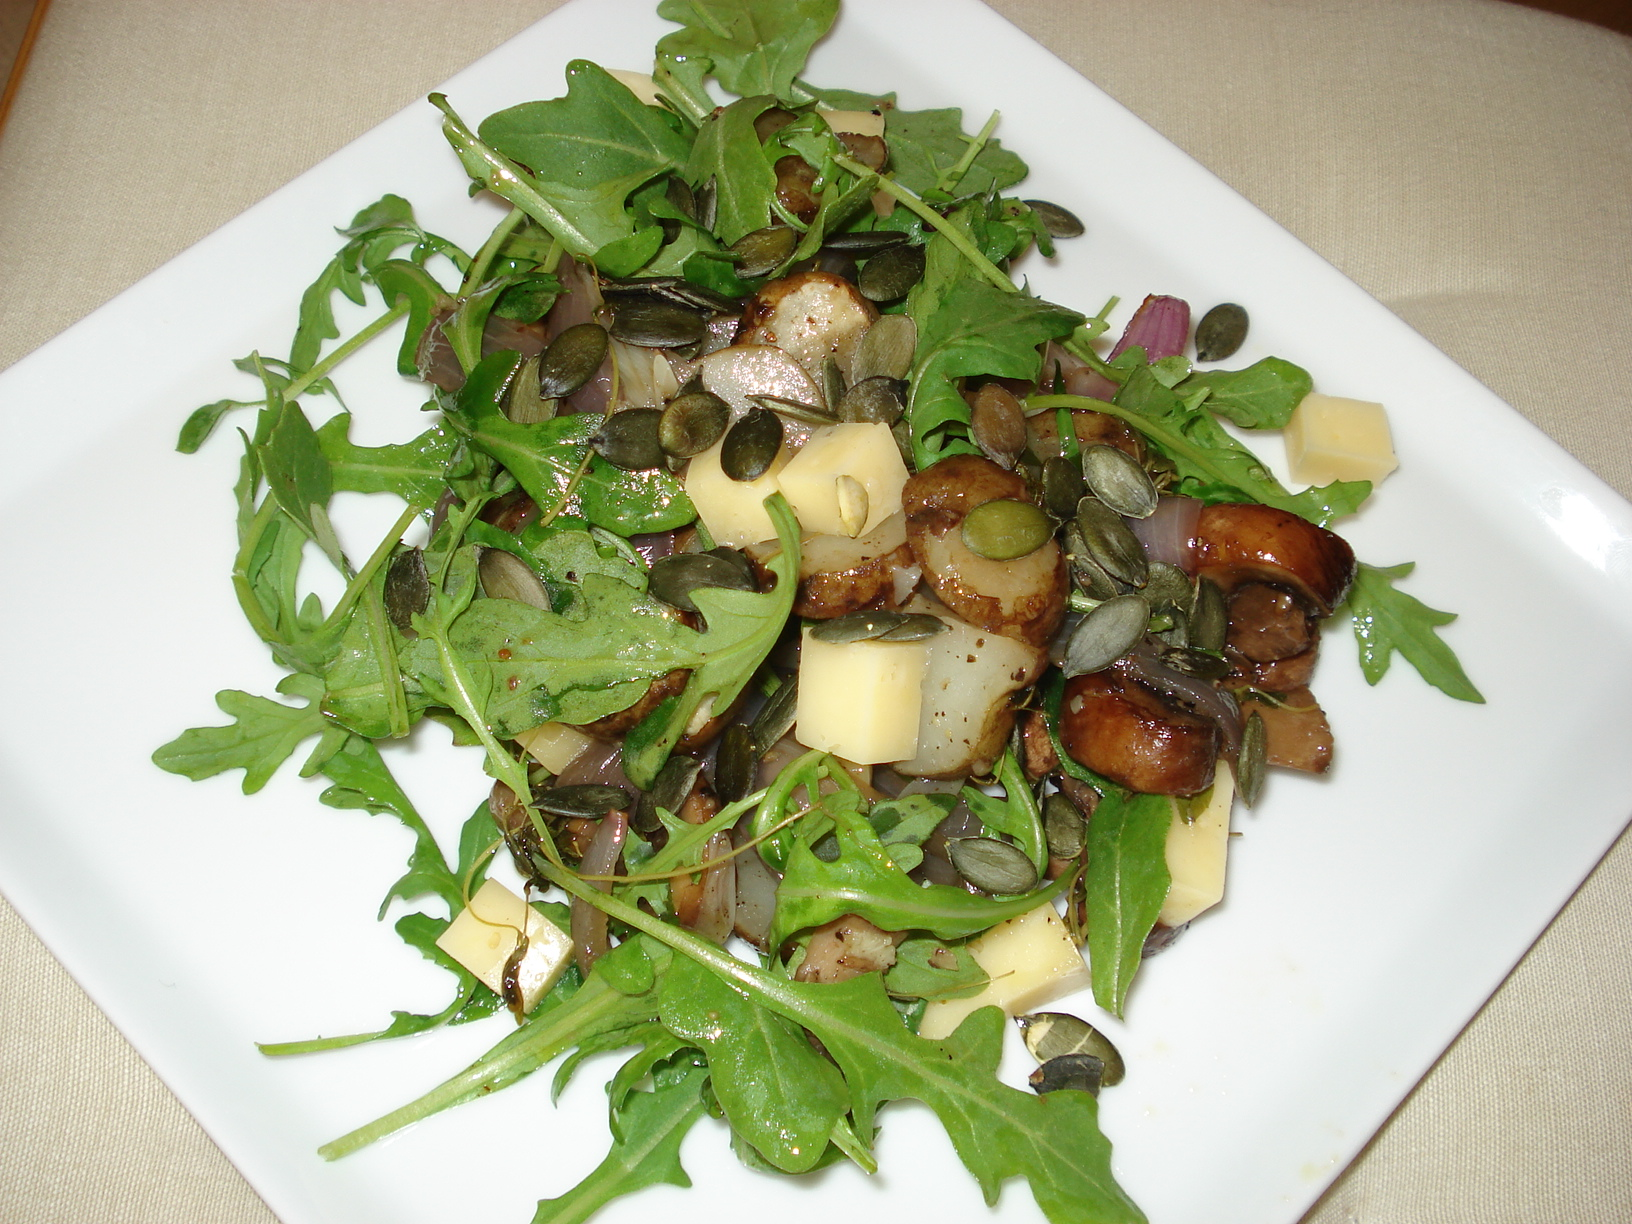 Oven-roasted salad with artichokes and mushrooms